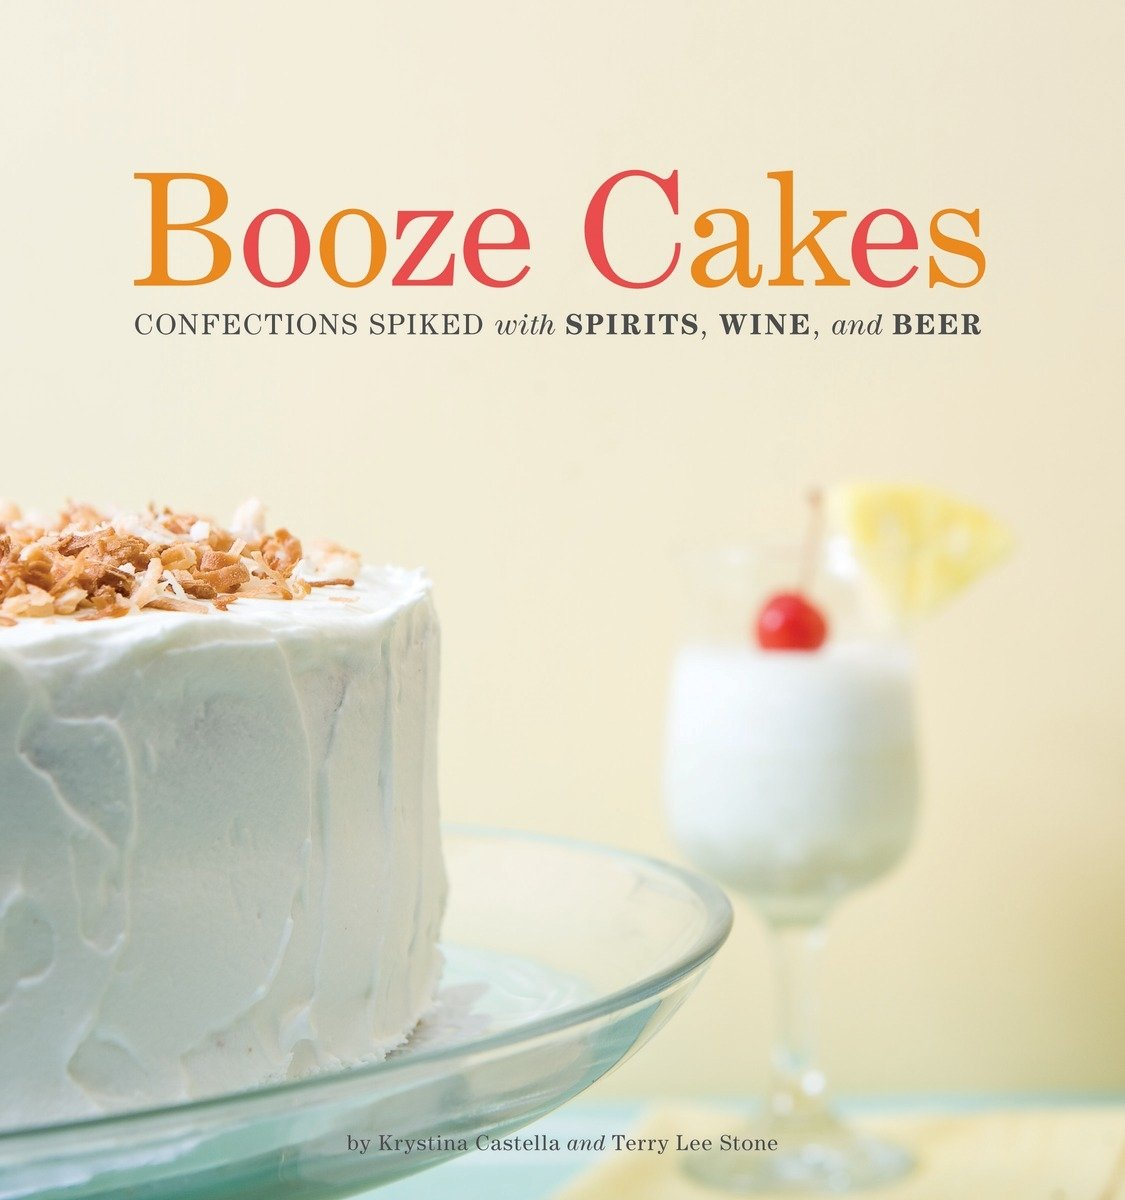 Booze Cakes Confections Spiked Spirits product image